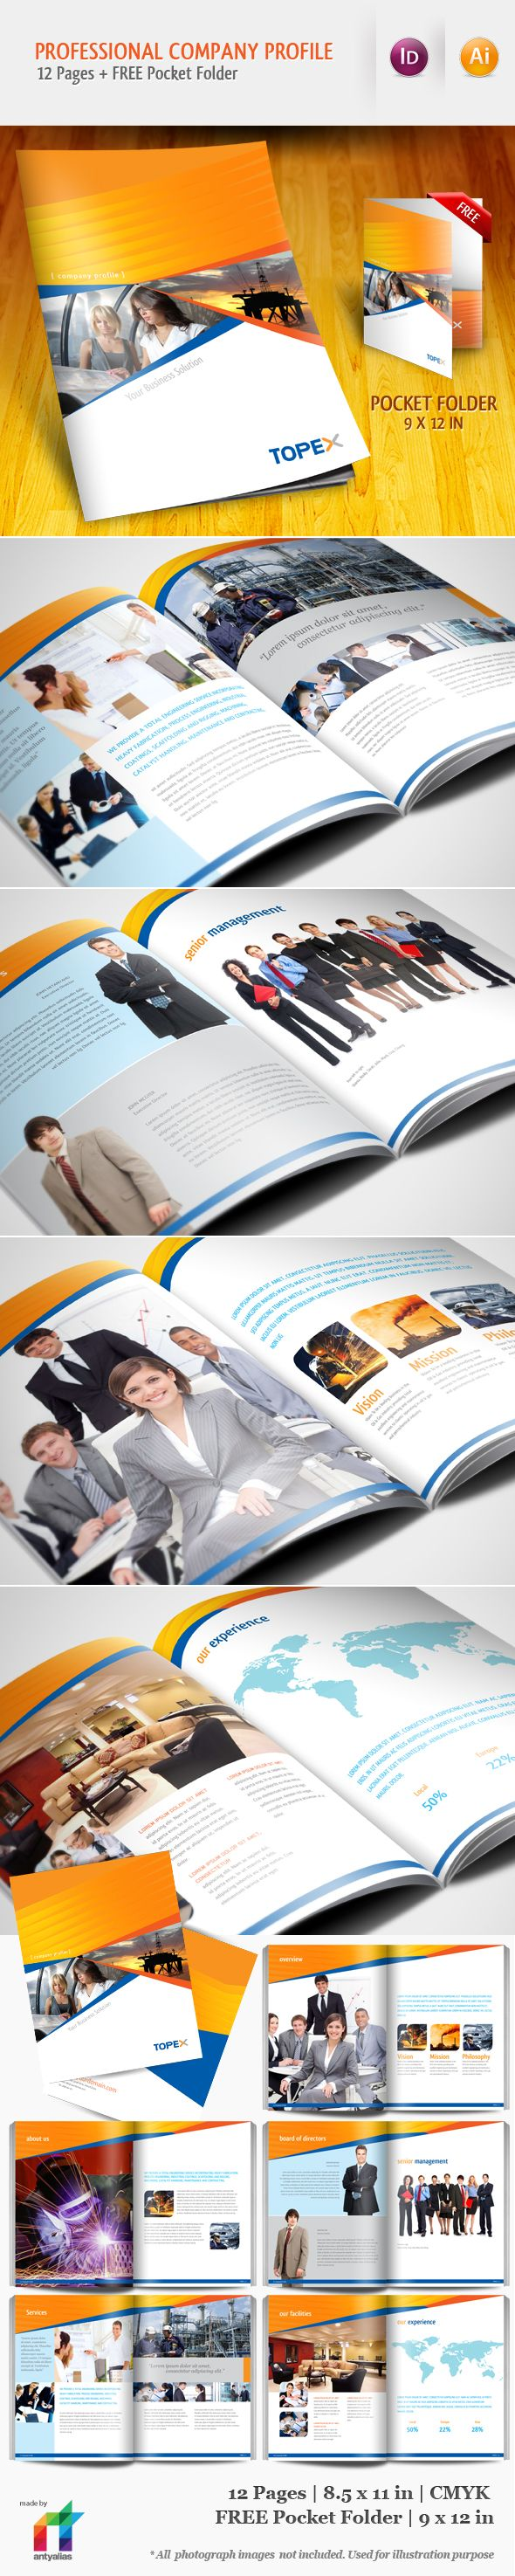 1000 images about Company Profile – Free Samples of Company Profiles